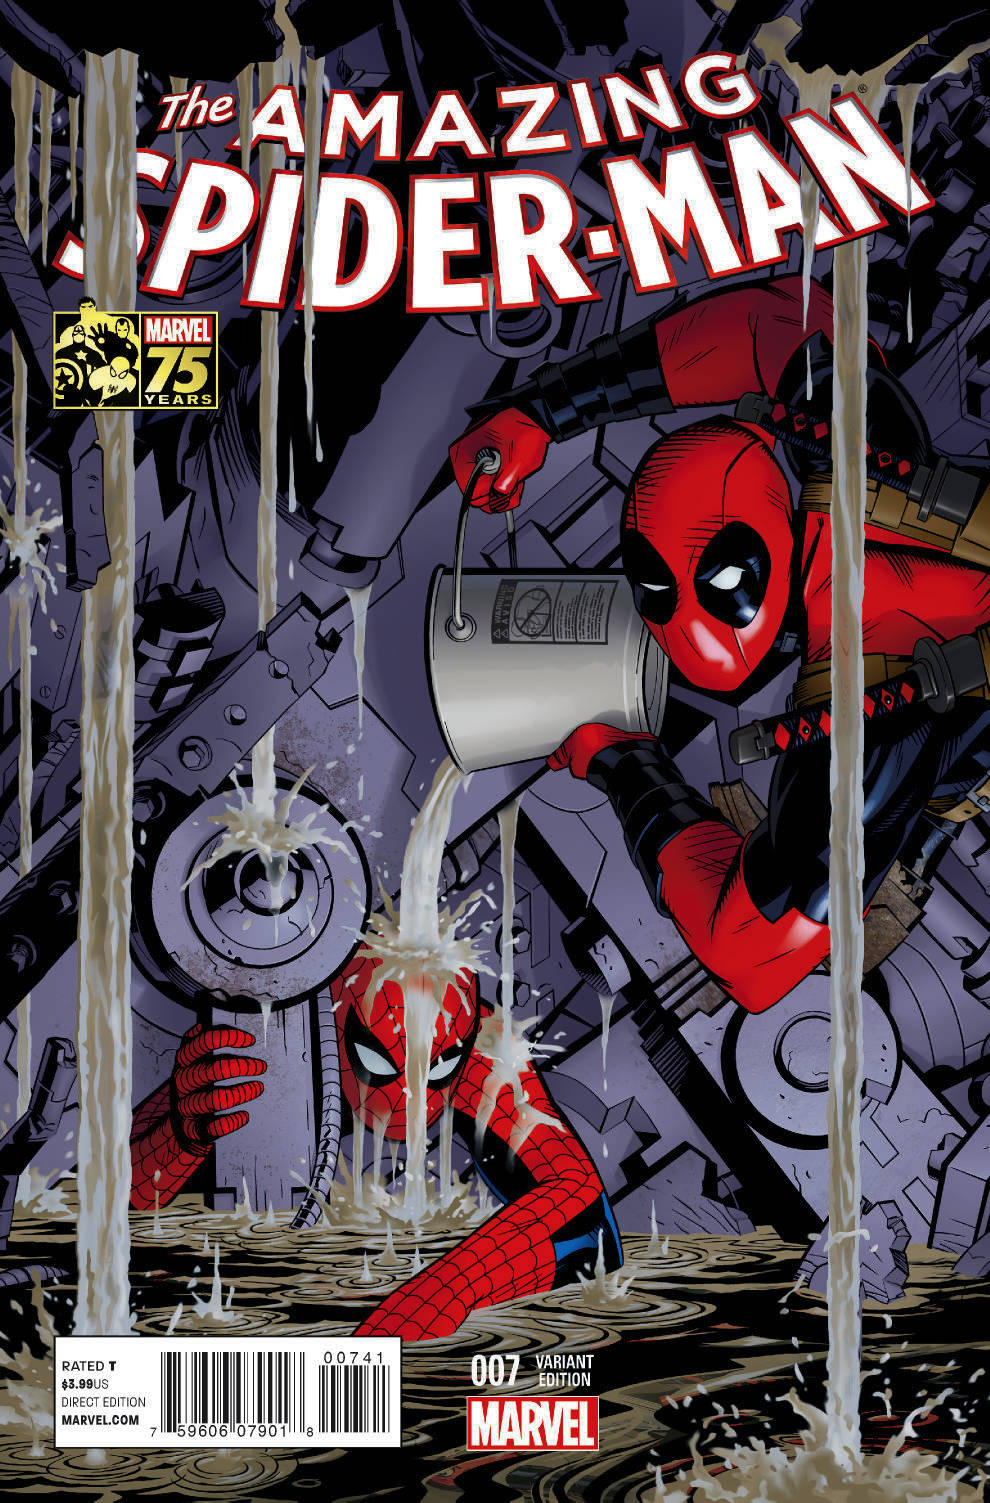 AMAZING SPIDER-MAN #7 DEADPOOL 75TH ANNIV VAR EOSV